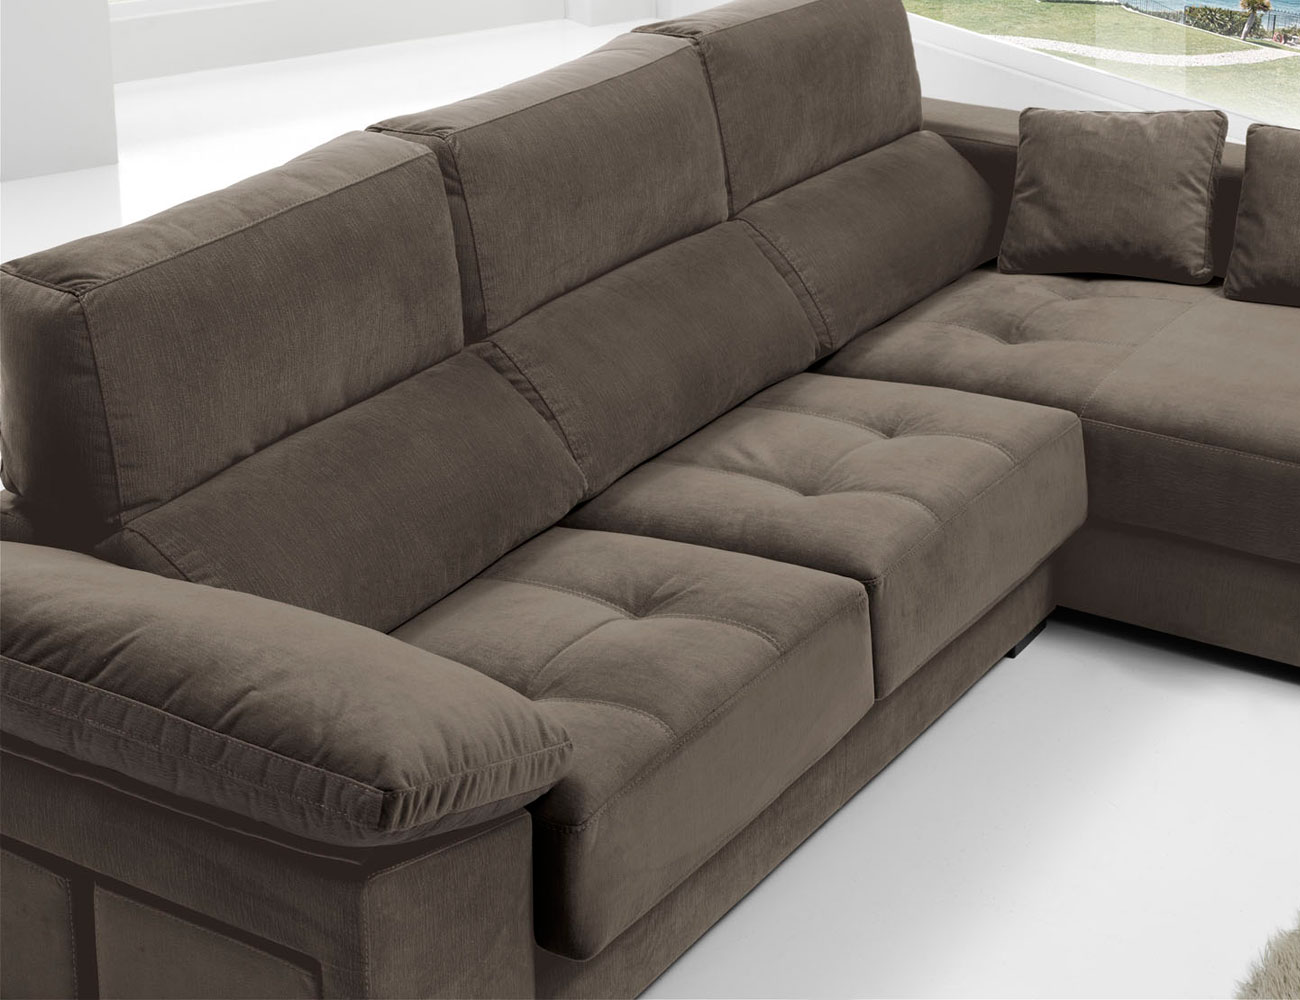 Sofa chaiselongue anti manchas bering pouf 21